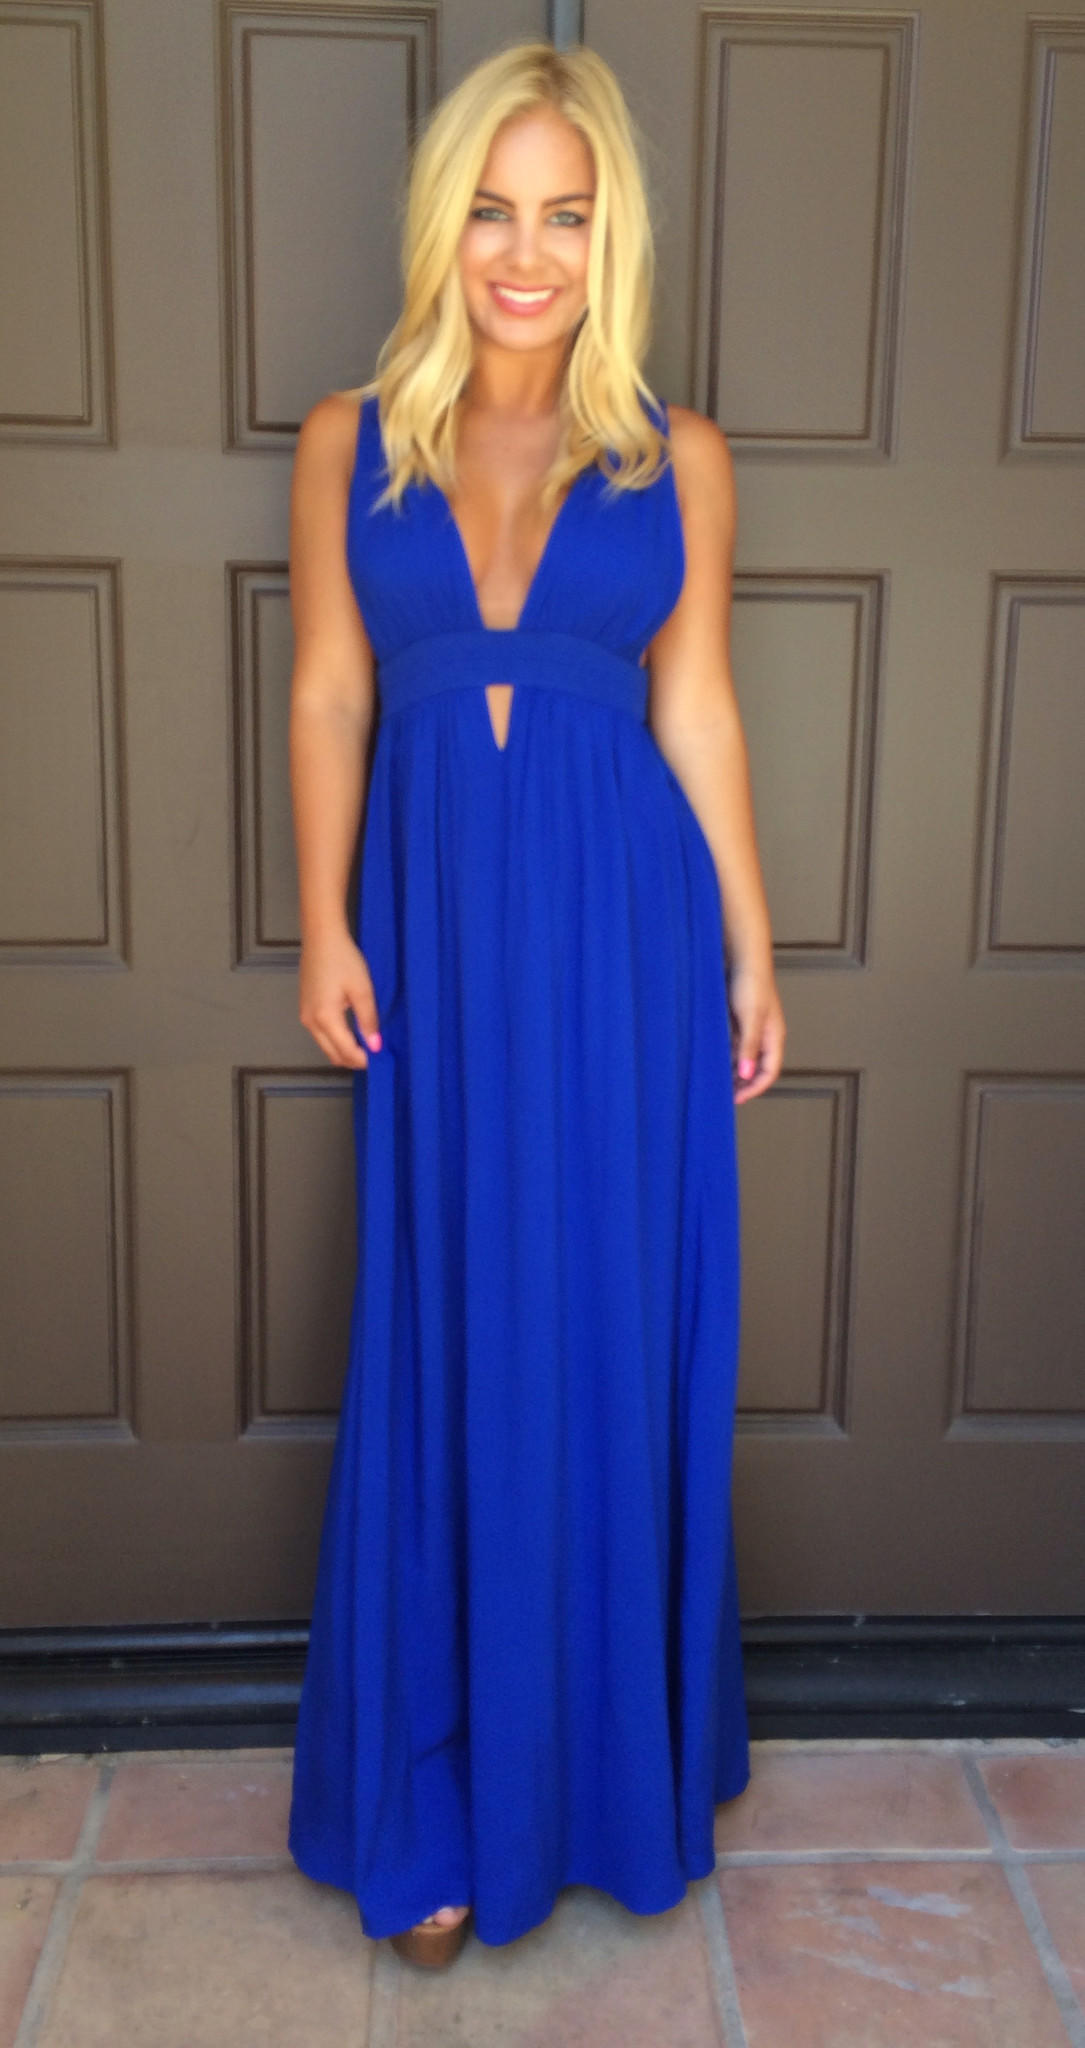 Kenya Cutout Maxi Dress - ROYAL BLUE from Dainty Hooligan